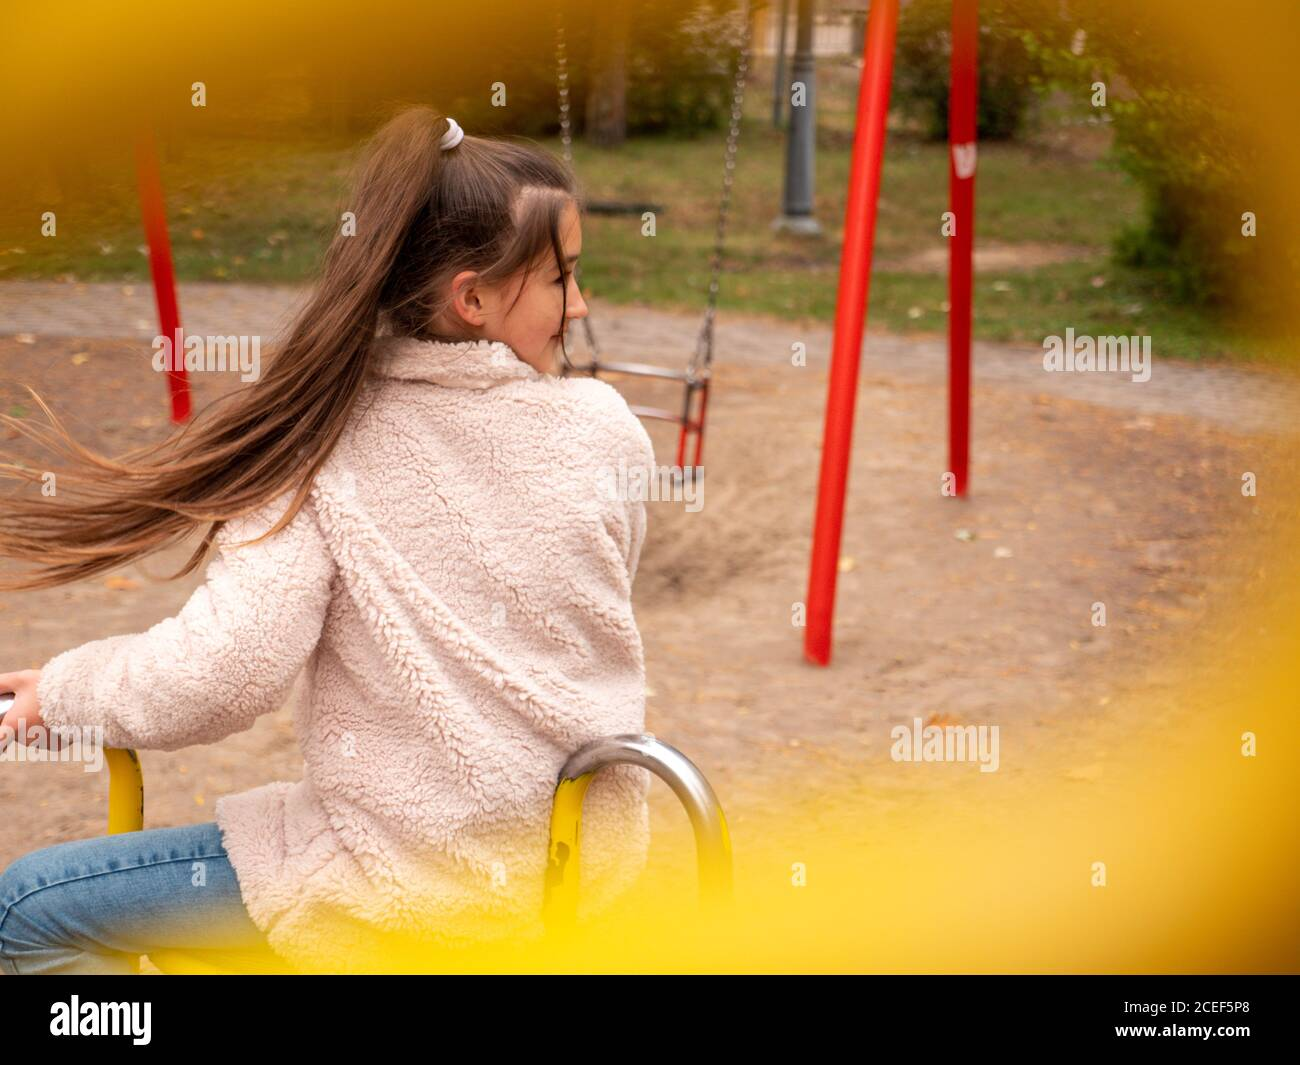 View through railings over happy smiling teenage girl in a faux fur coat and with long ponytail spinning at a merry-go-round at children playground. Stock Photo